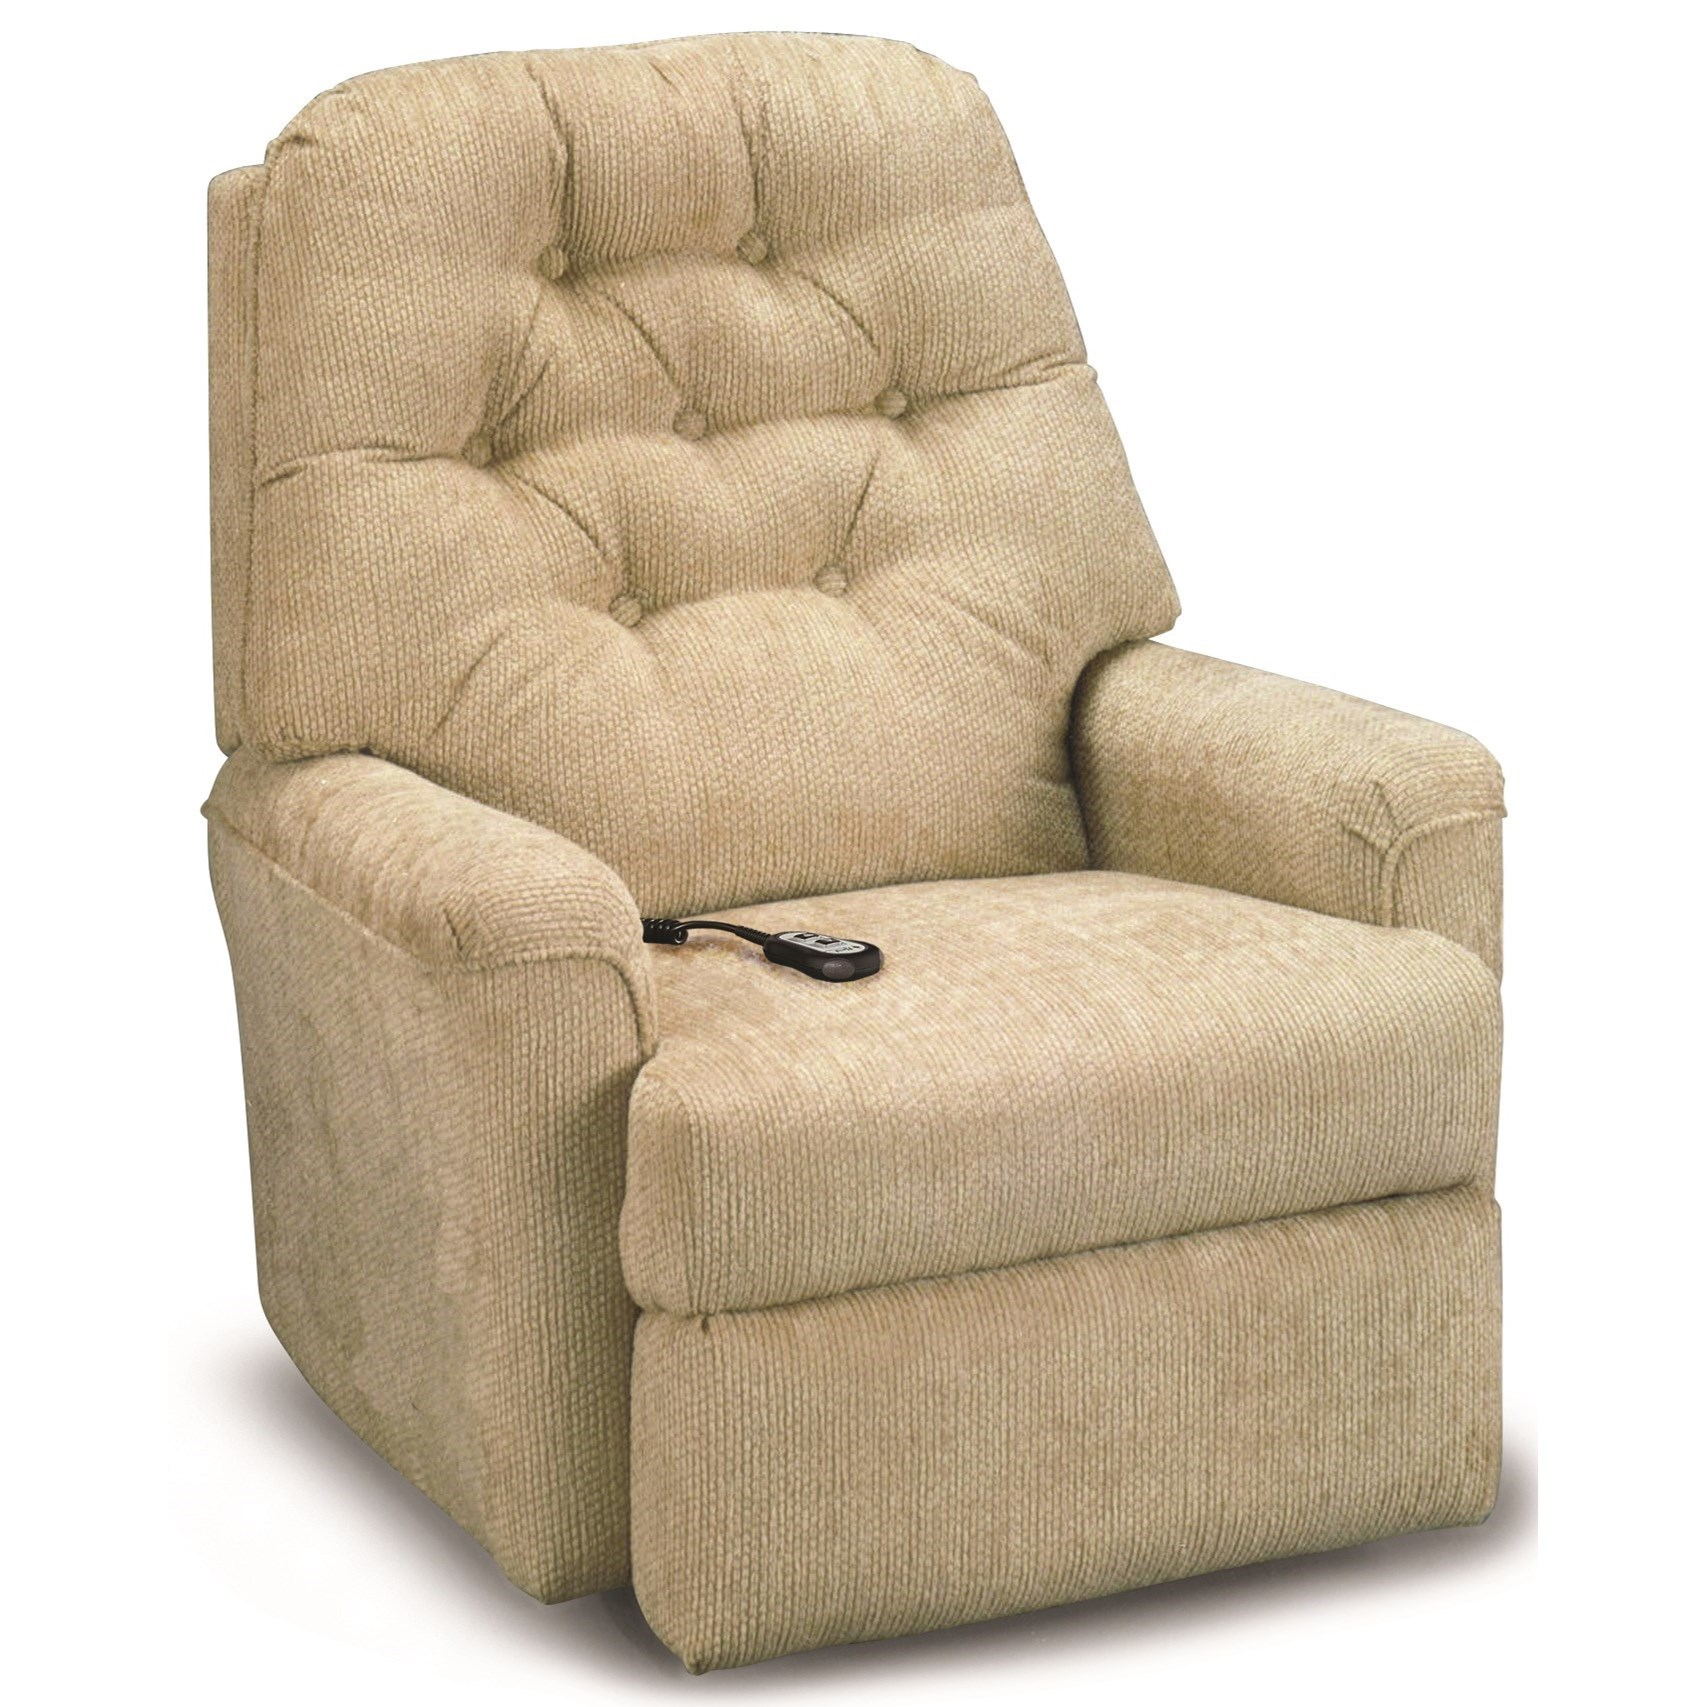 Lift Chairs Recliners Best Home Furnishings Recliners Petite Cara Lift